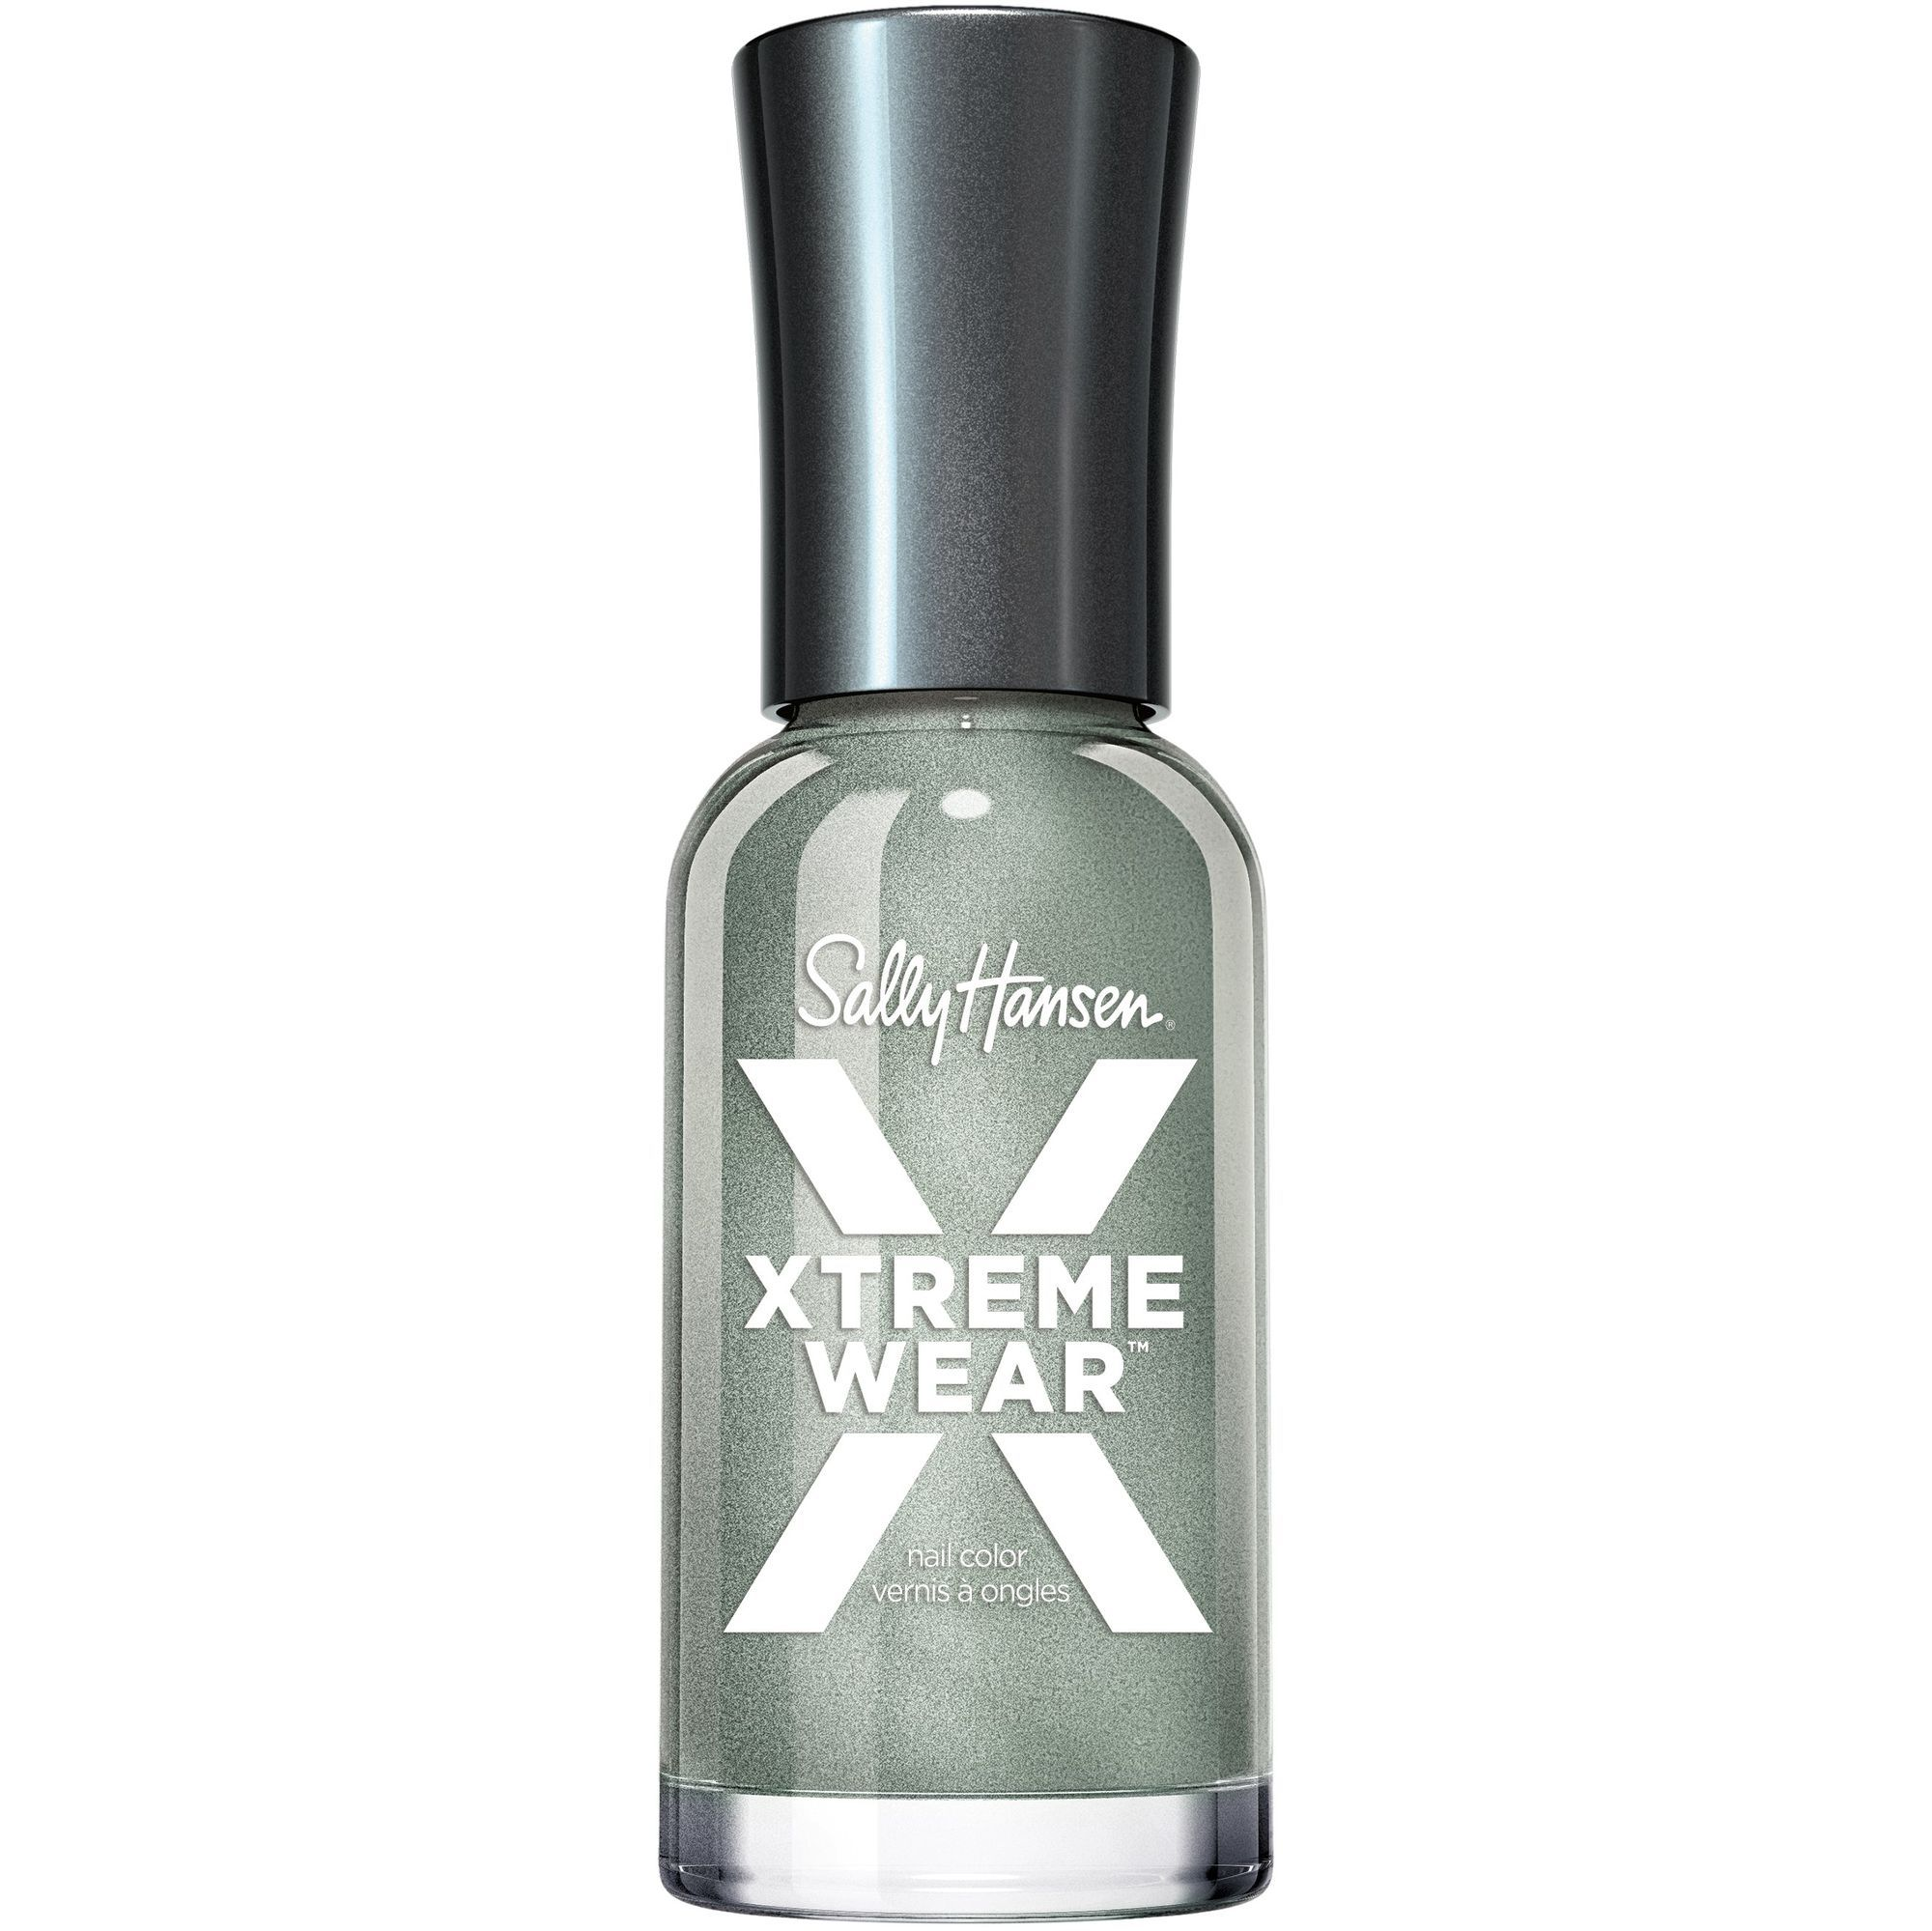 Лак для ногтей Sally Hansen Xtreme Wear Nail Color Ж Товар Тон 376 лак для ногтей sally hansen insta dri nail color ж товар тон 273